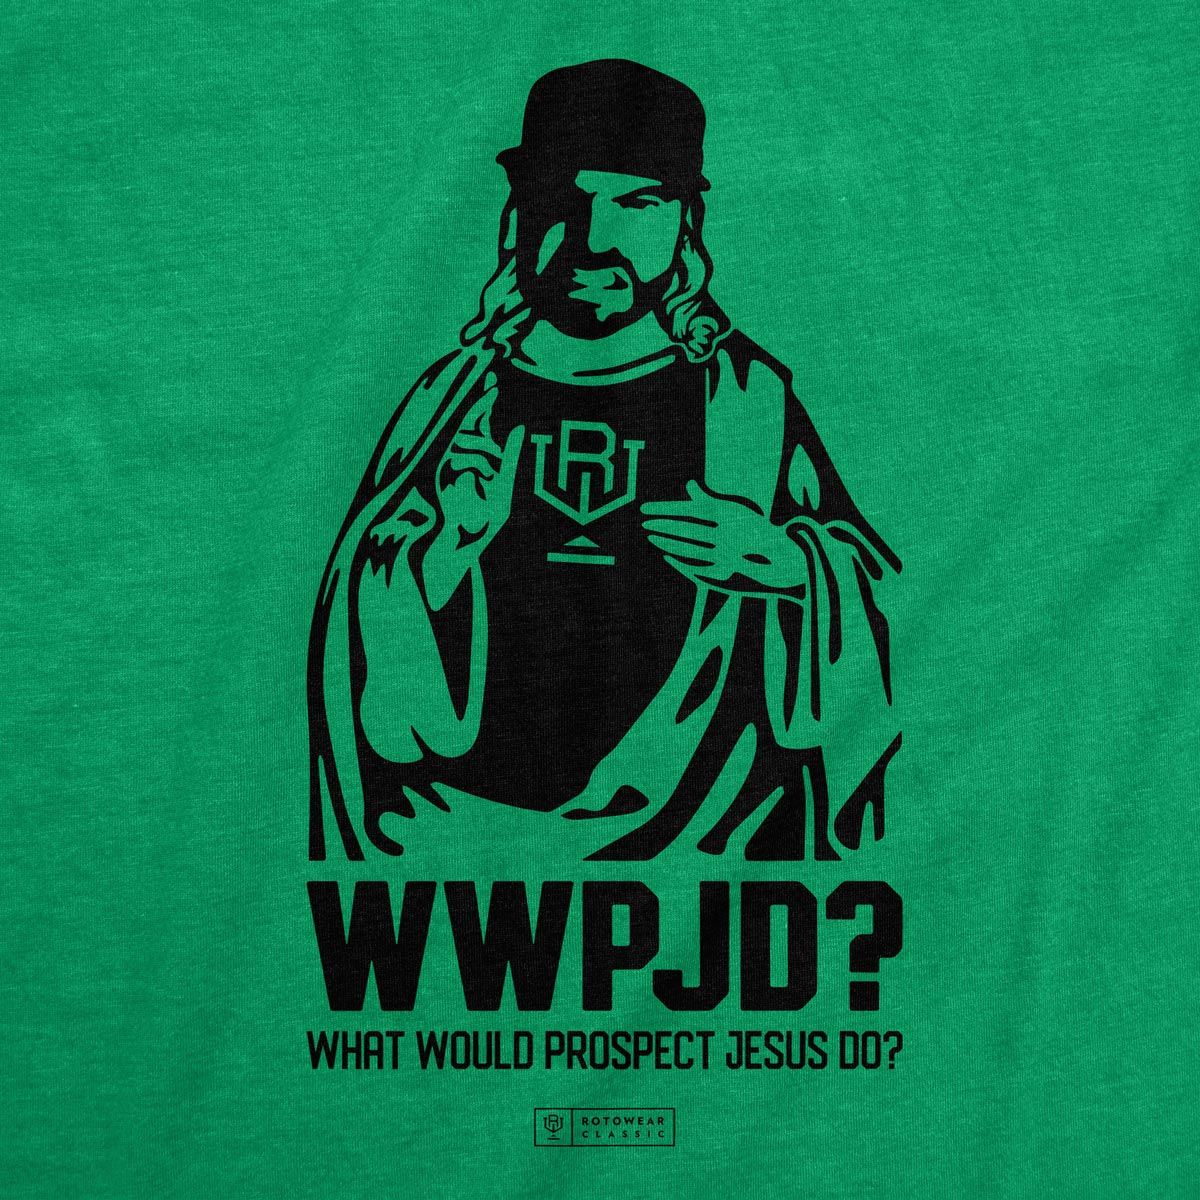 What Would Prospect Jesus Do?